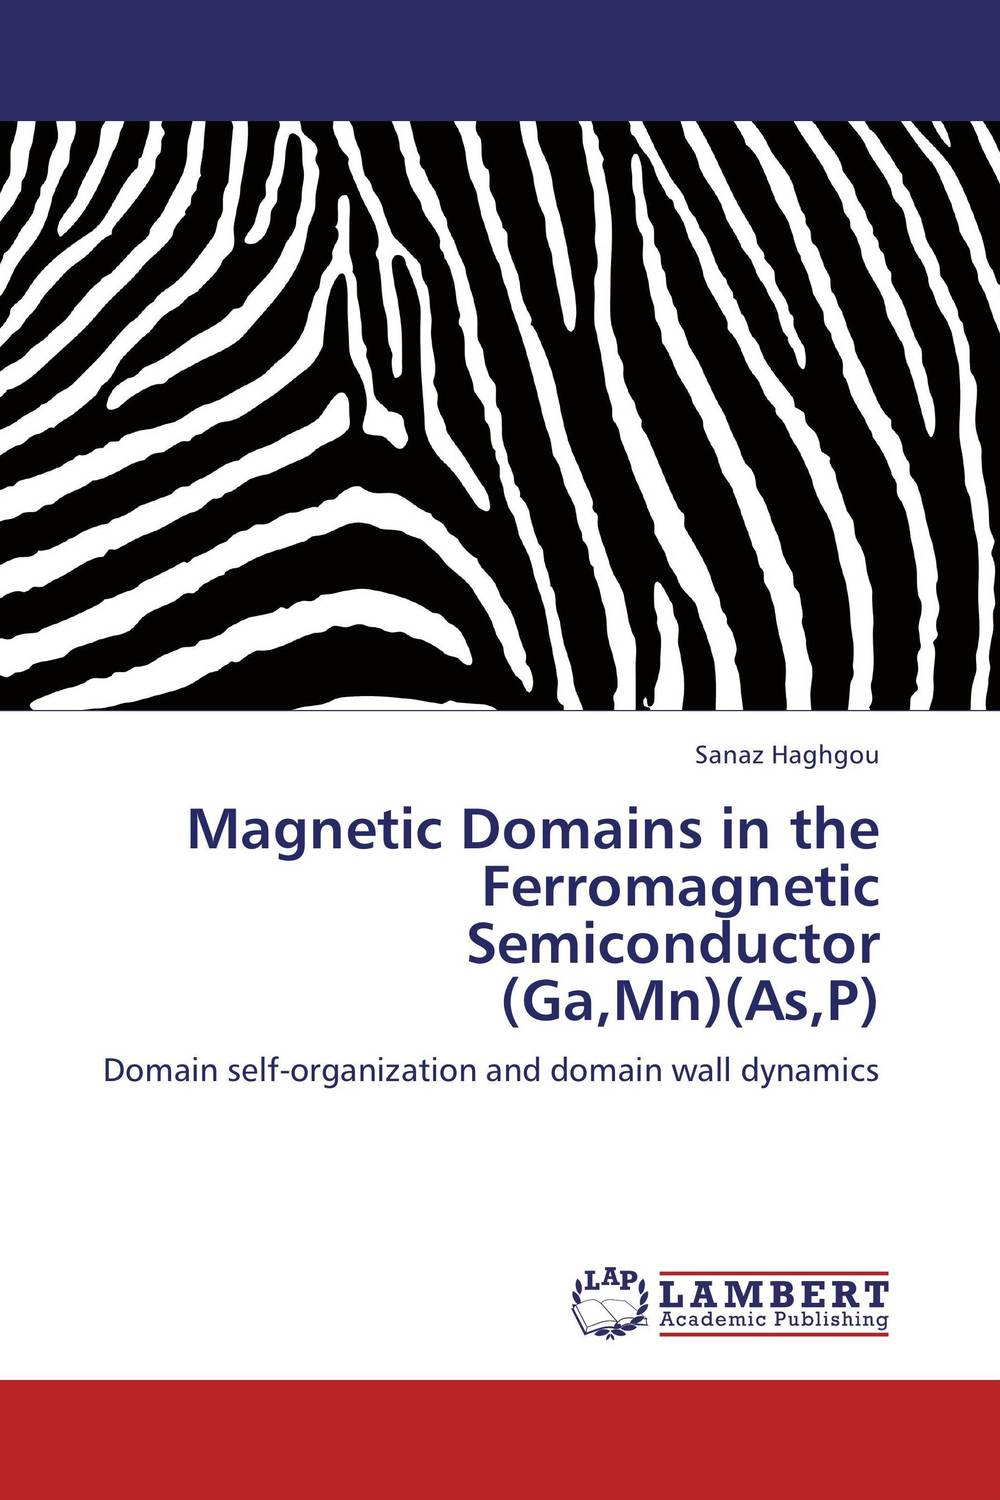 Magnetic Domains in the Ferromagnetic Semiconductor  (Ga,Mn)(As,P) driven to distraction